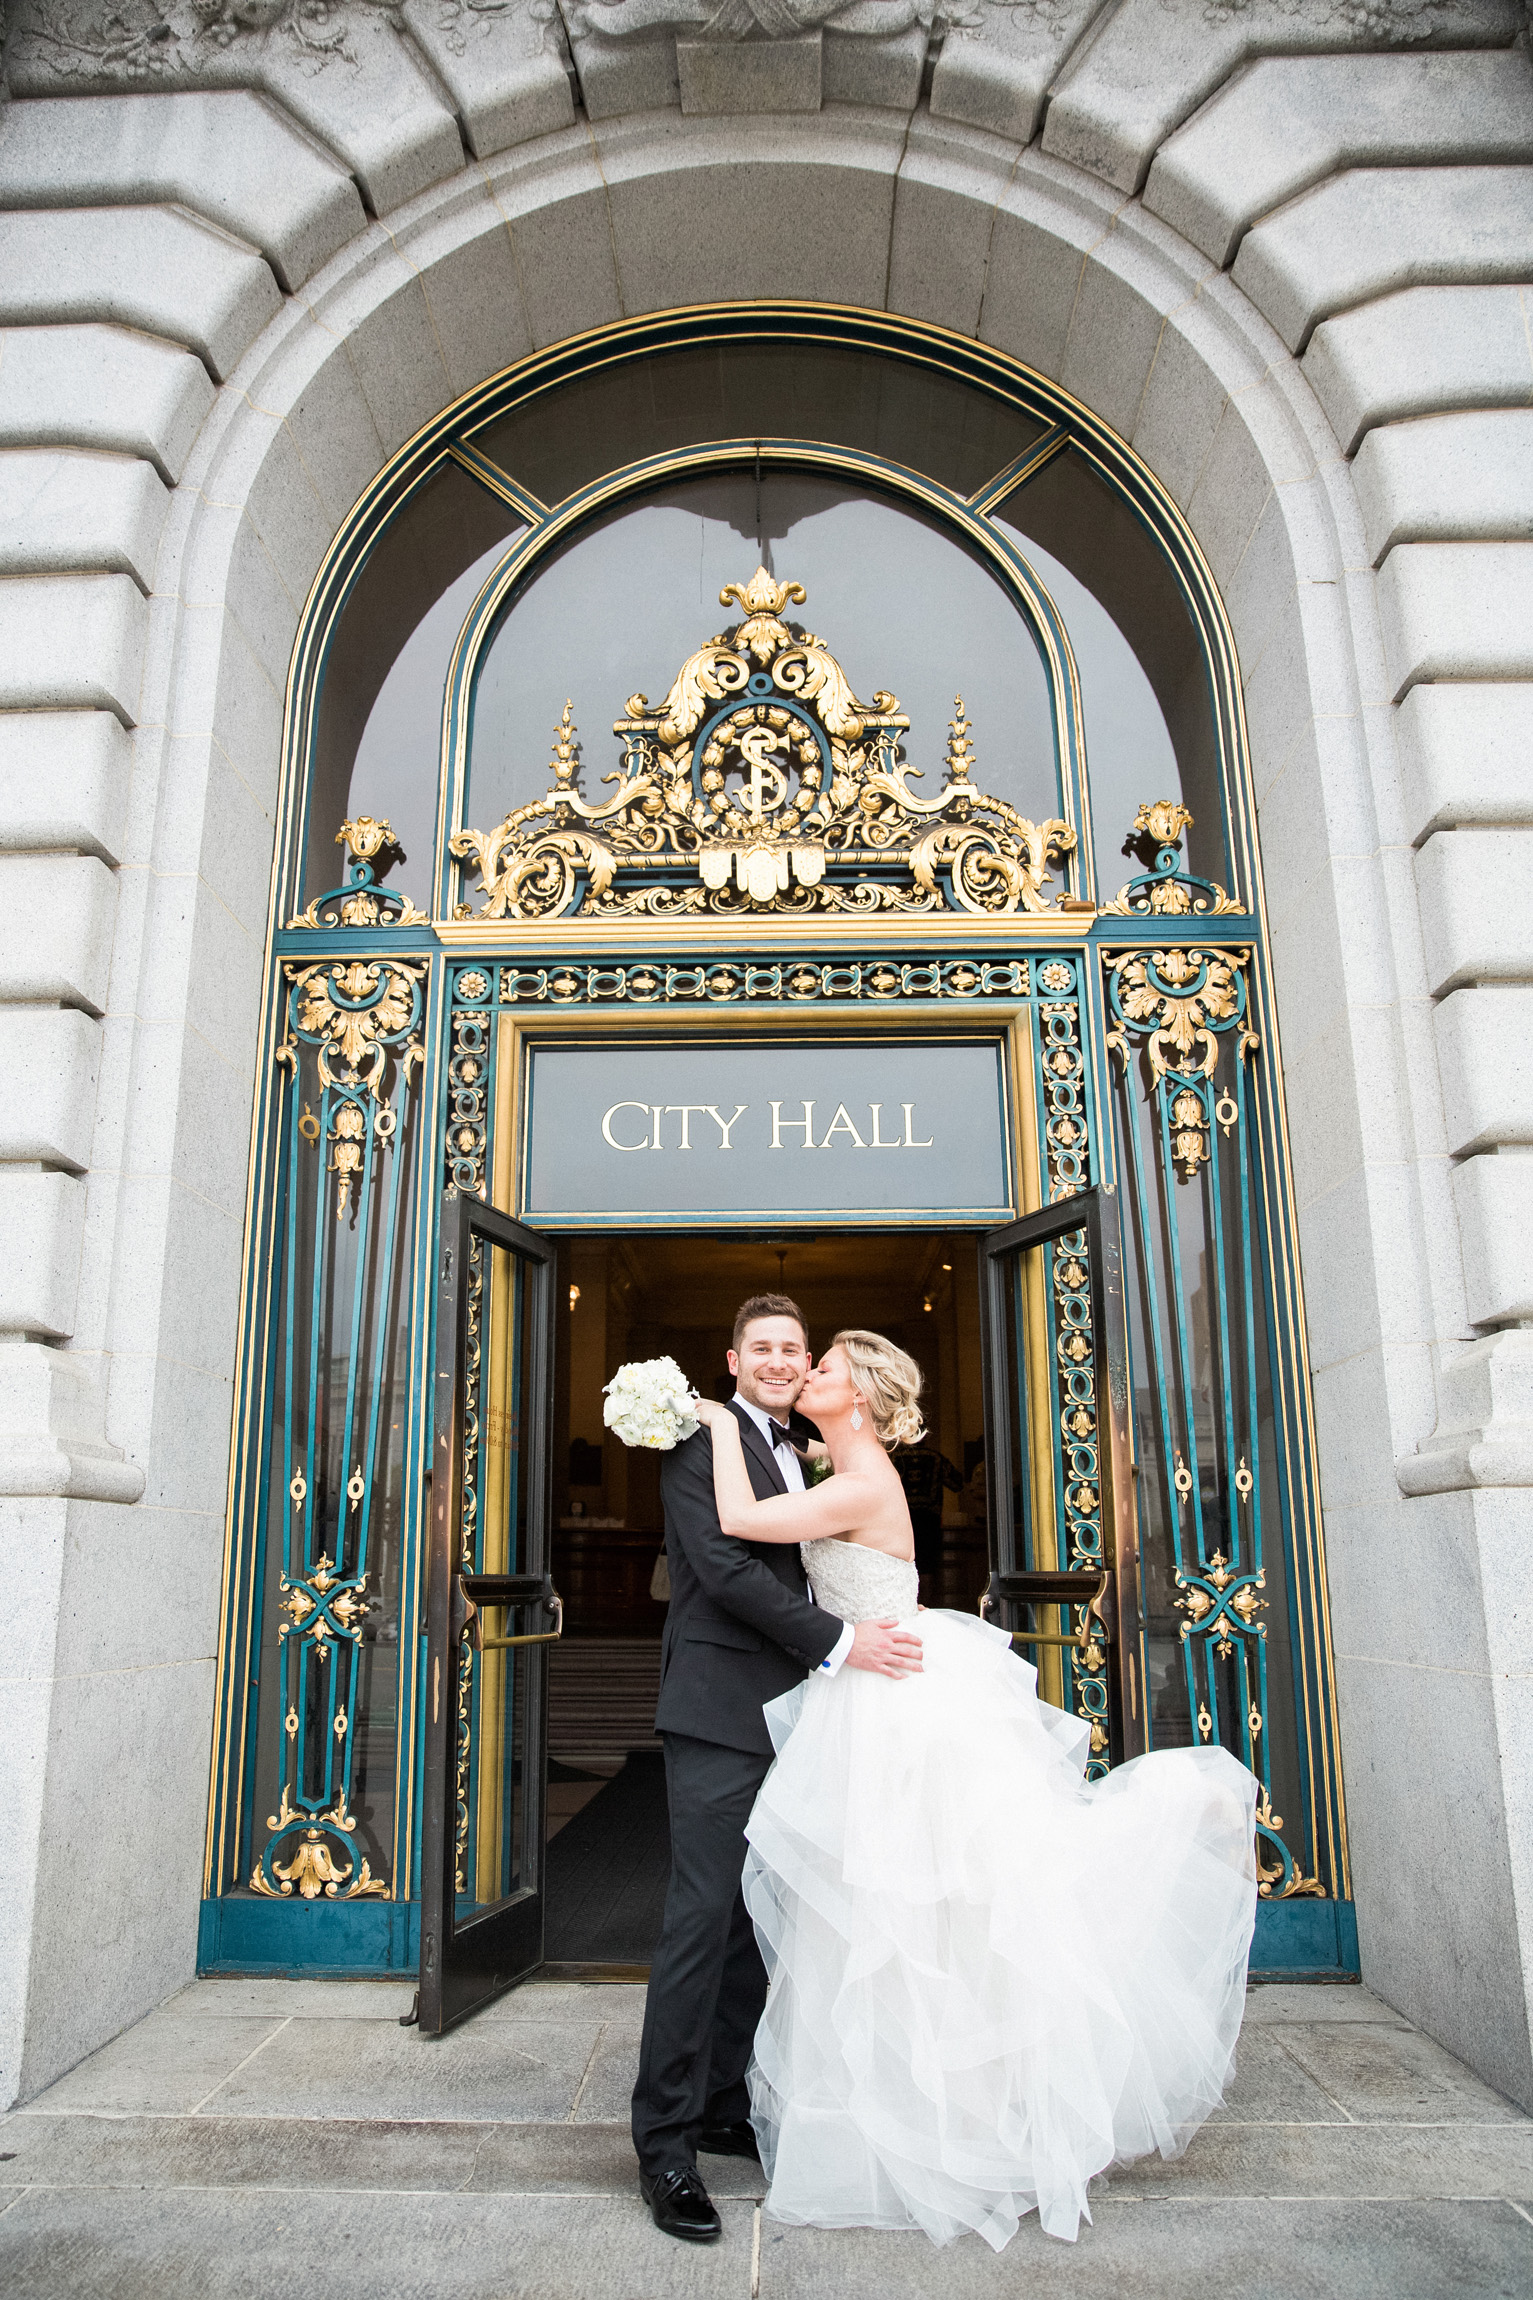 043_janaeshieldsphotography_sanfrancisco_cityhall_weddings.jpg